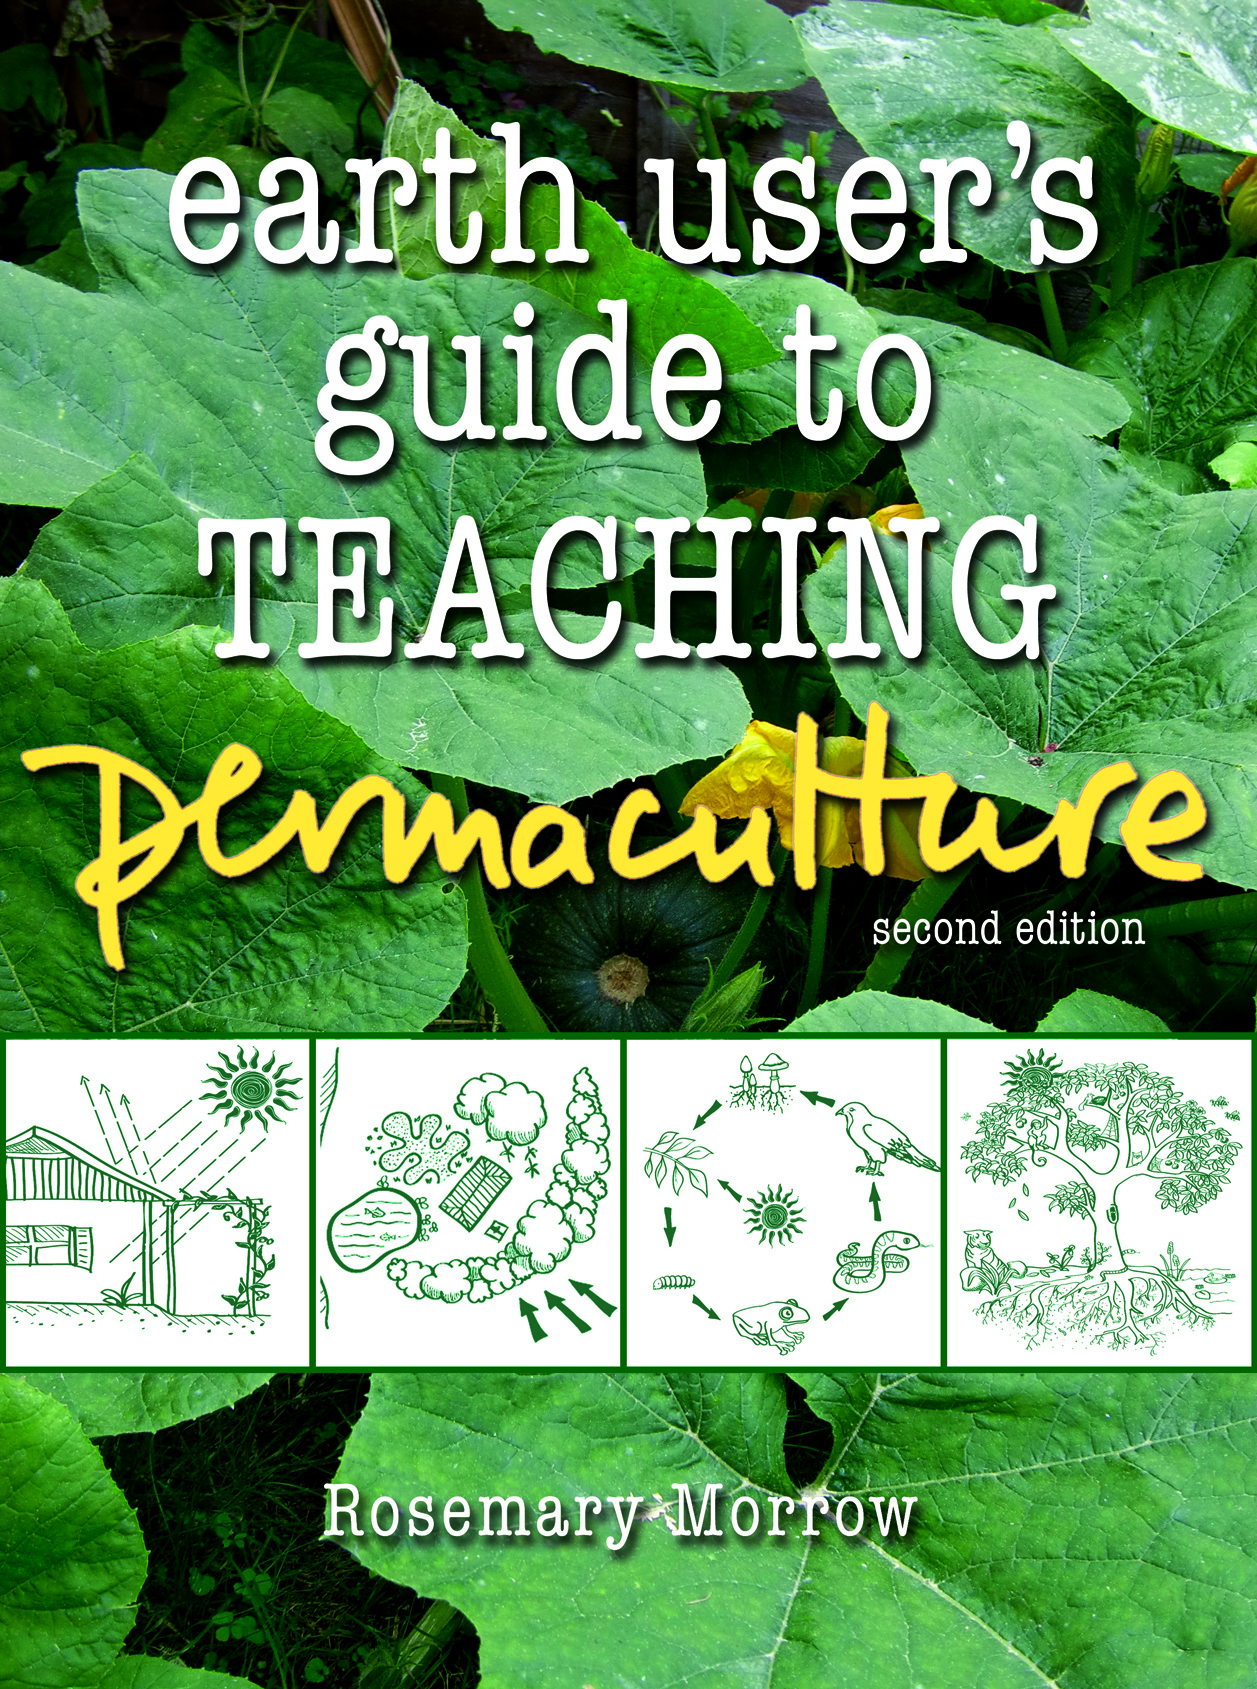 The Earth User's Guide to Teaching Permaculture cover